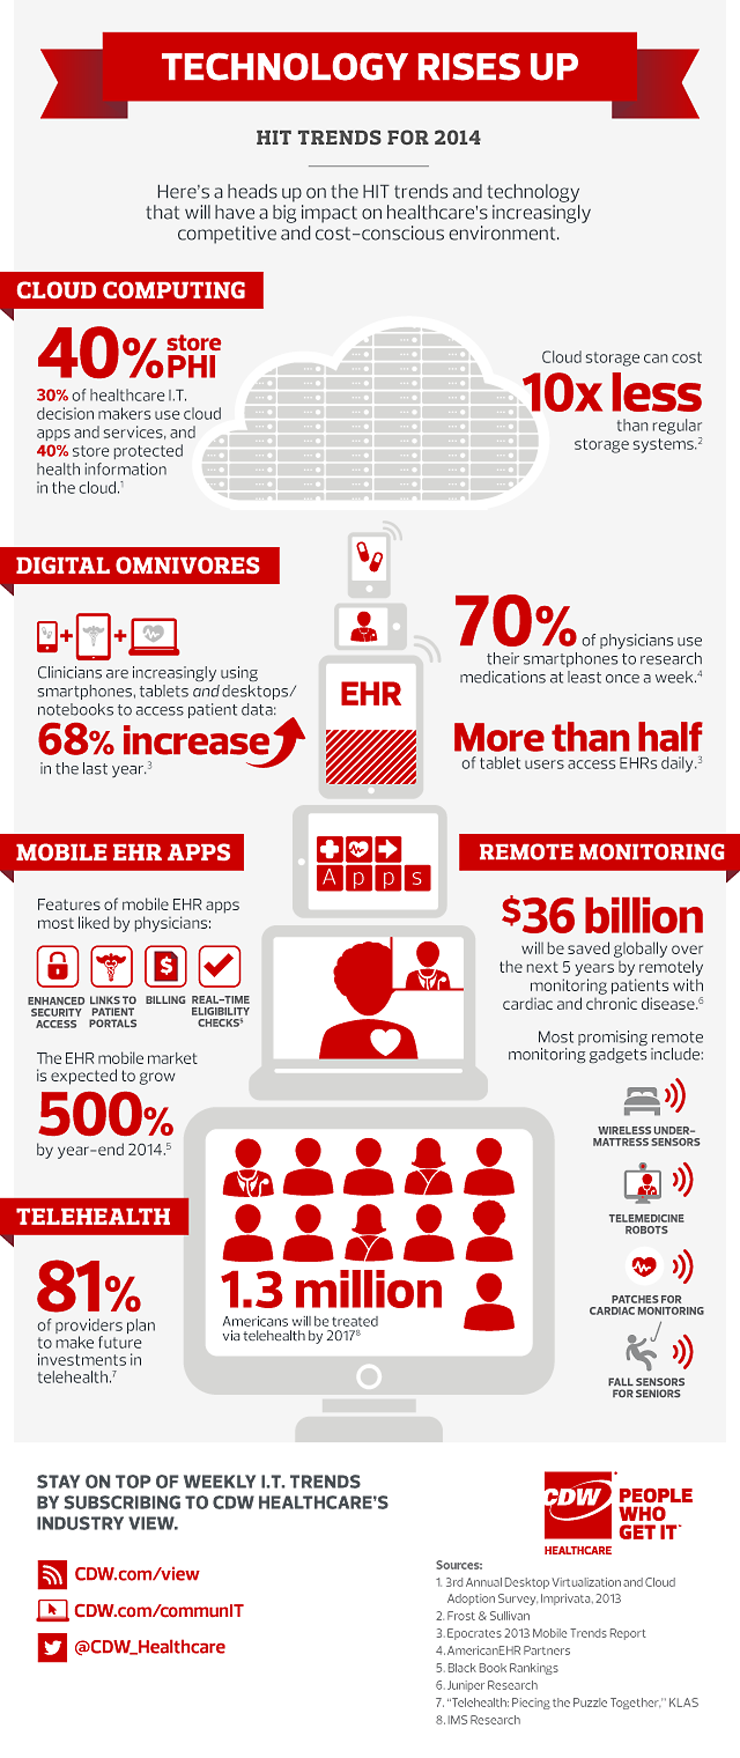 Health IT 2014 trends